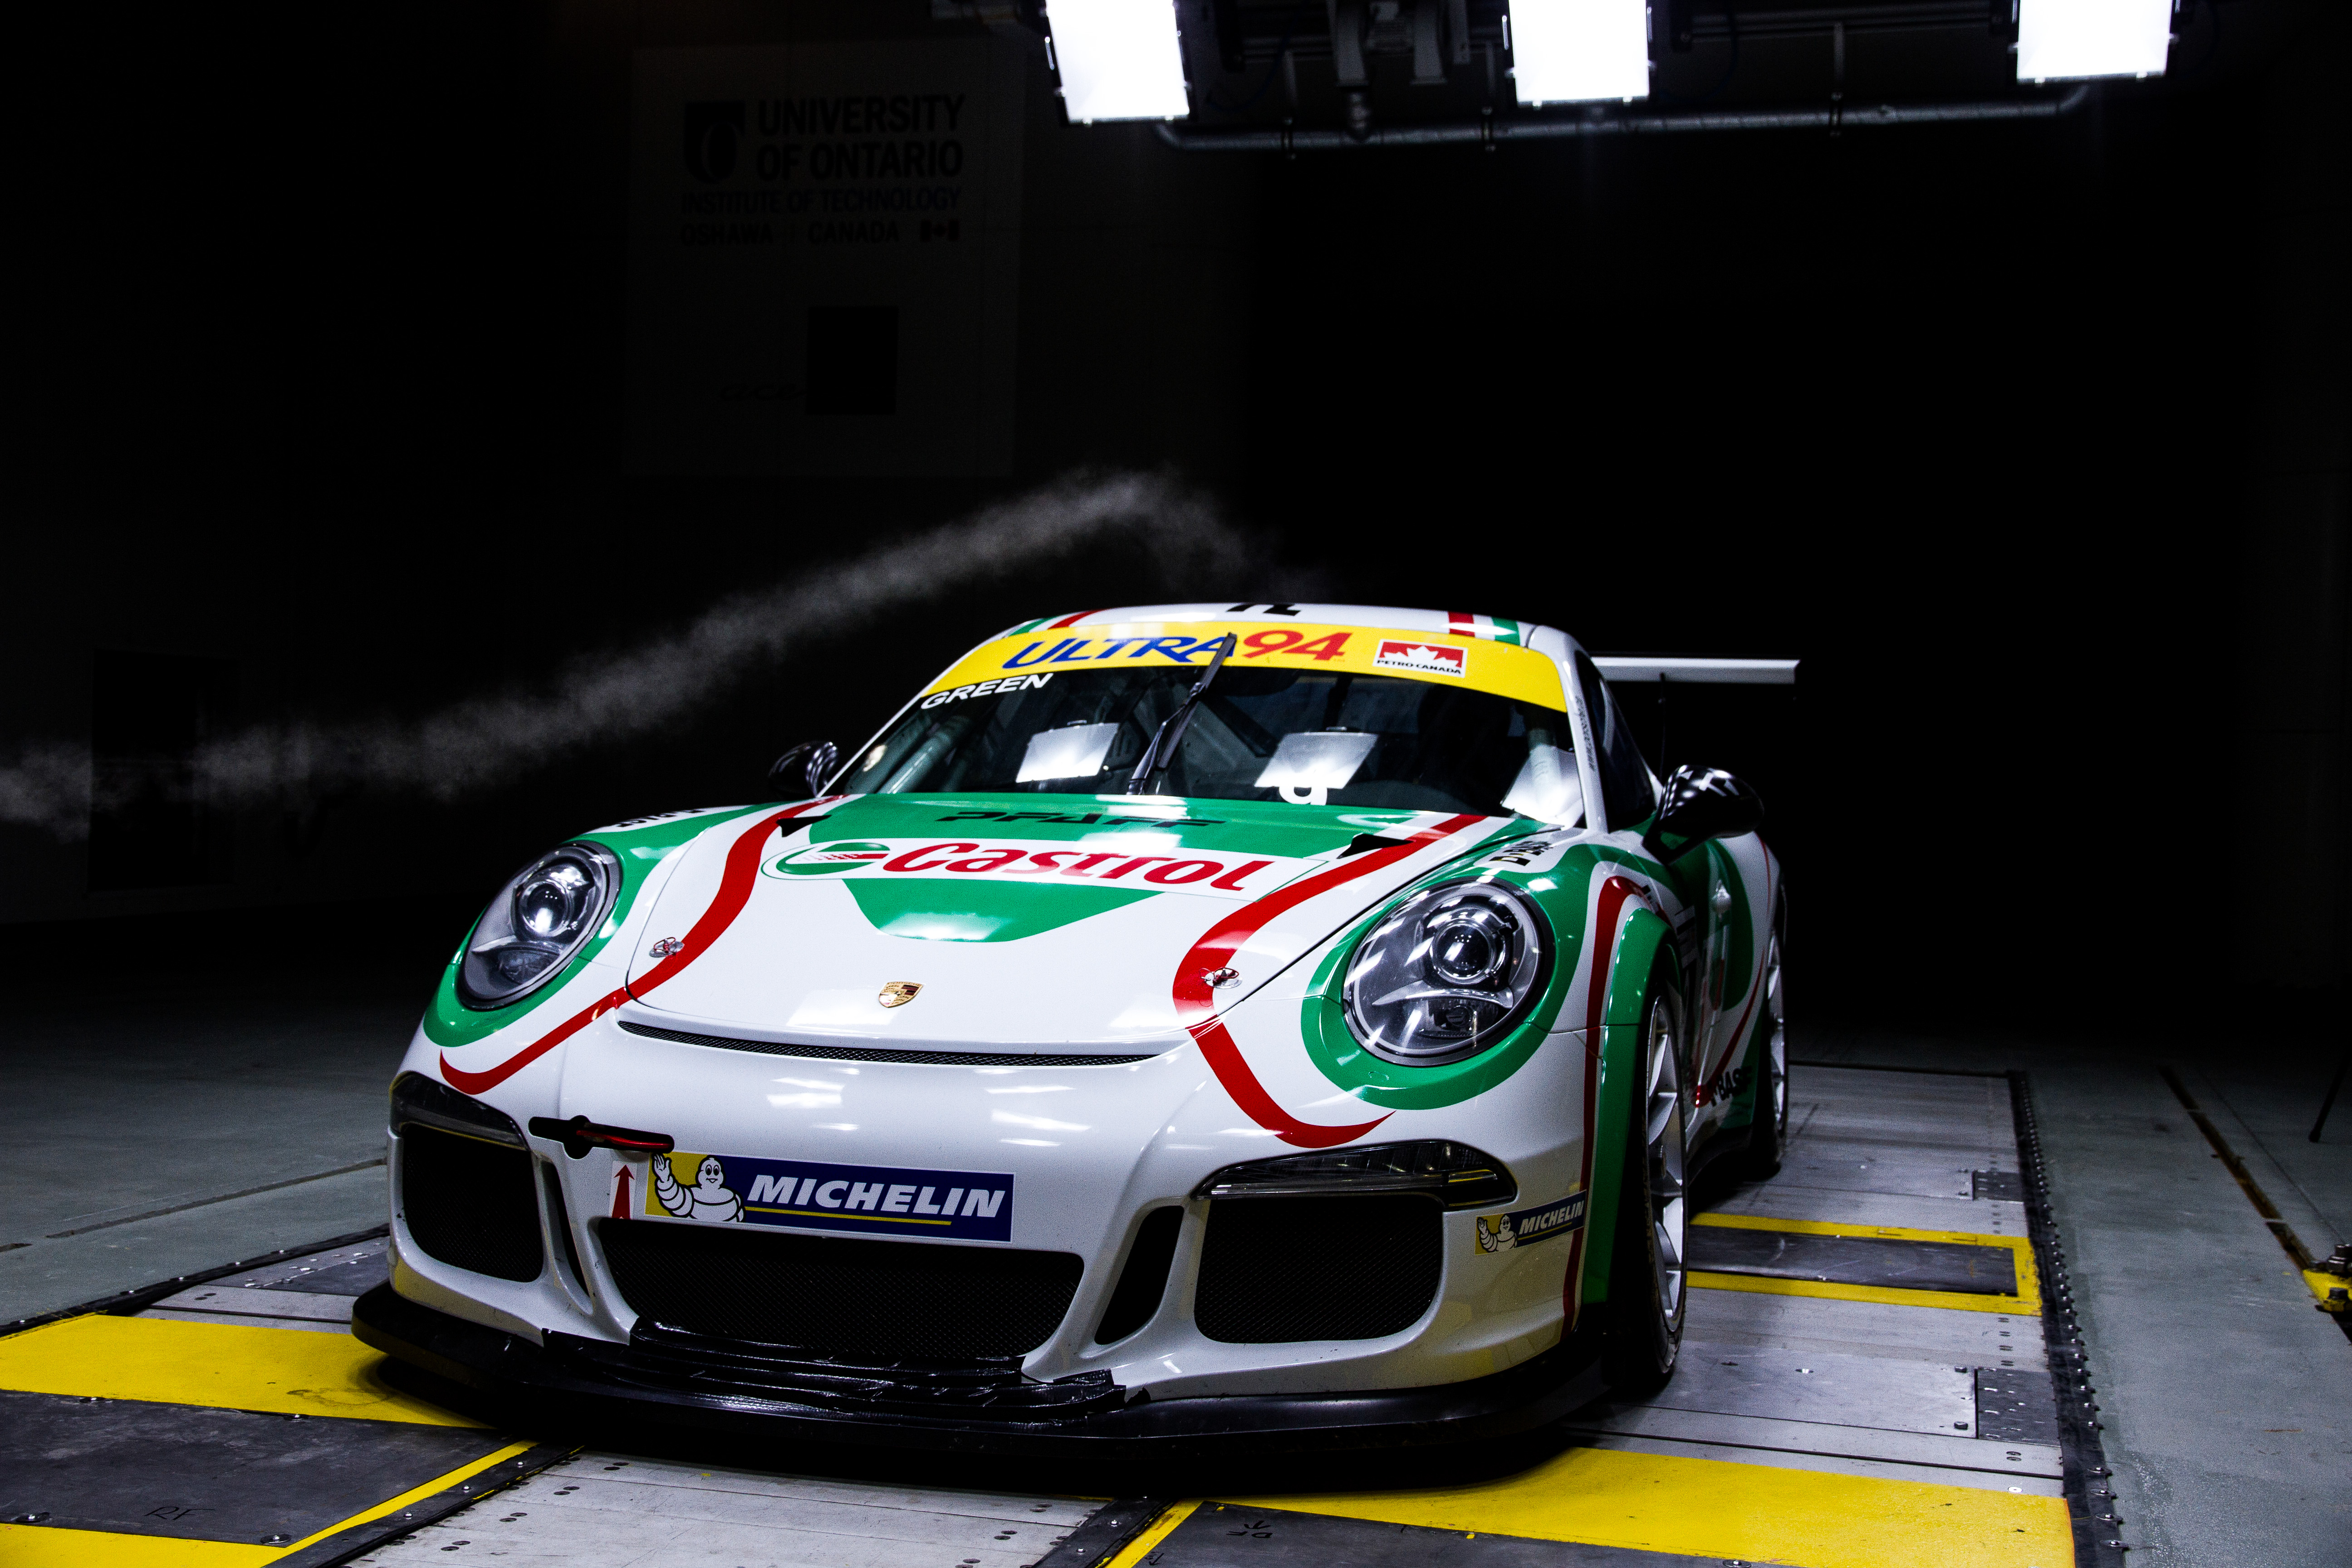 Porsche being tested in the CWT